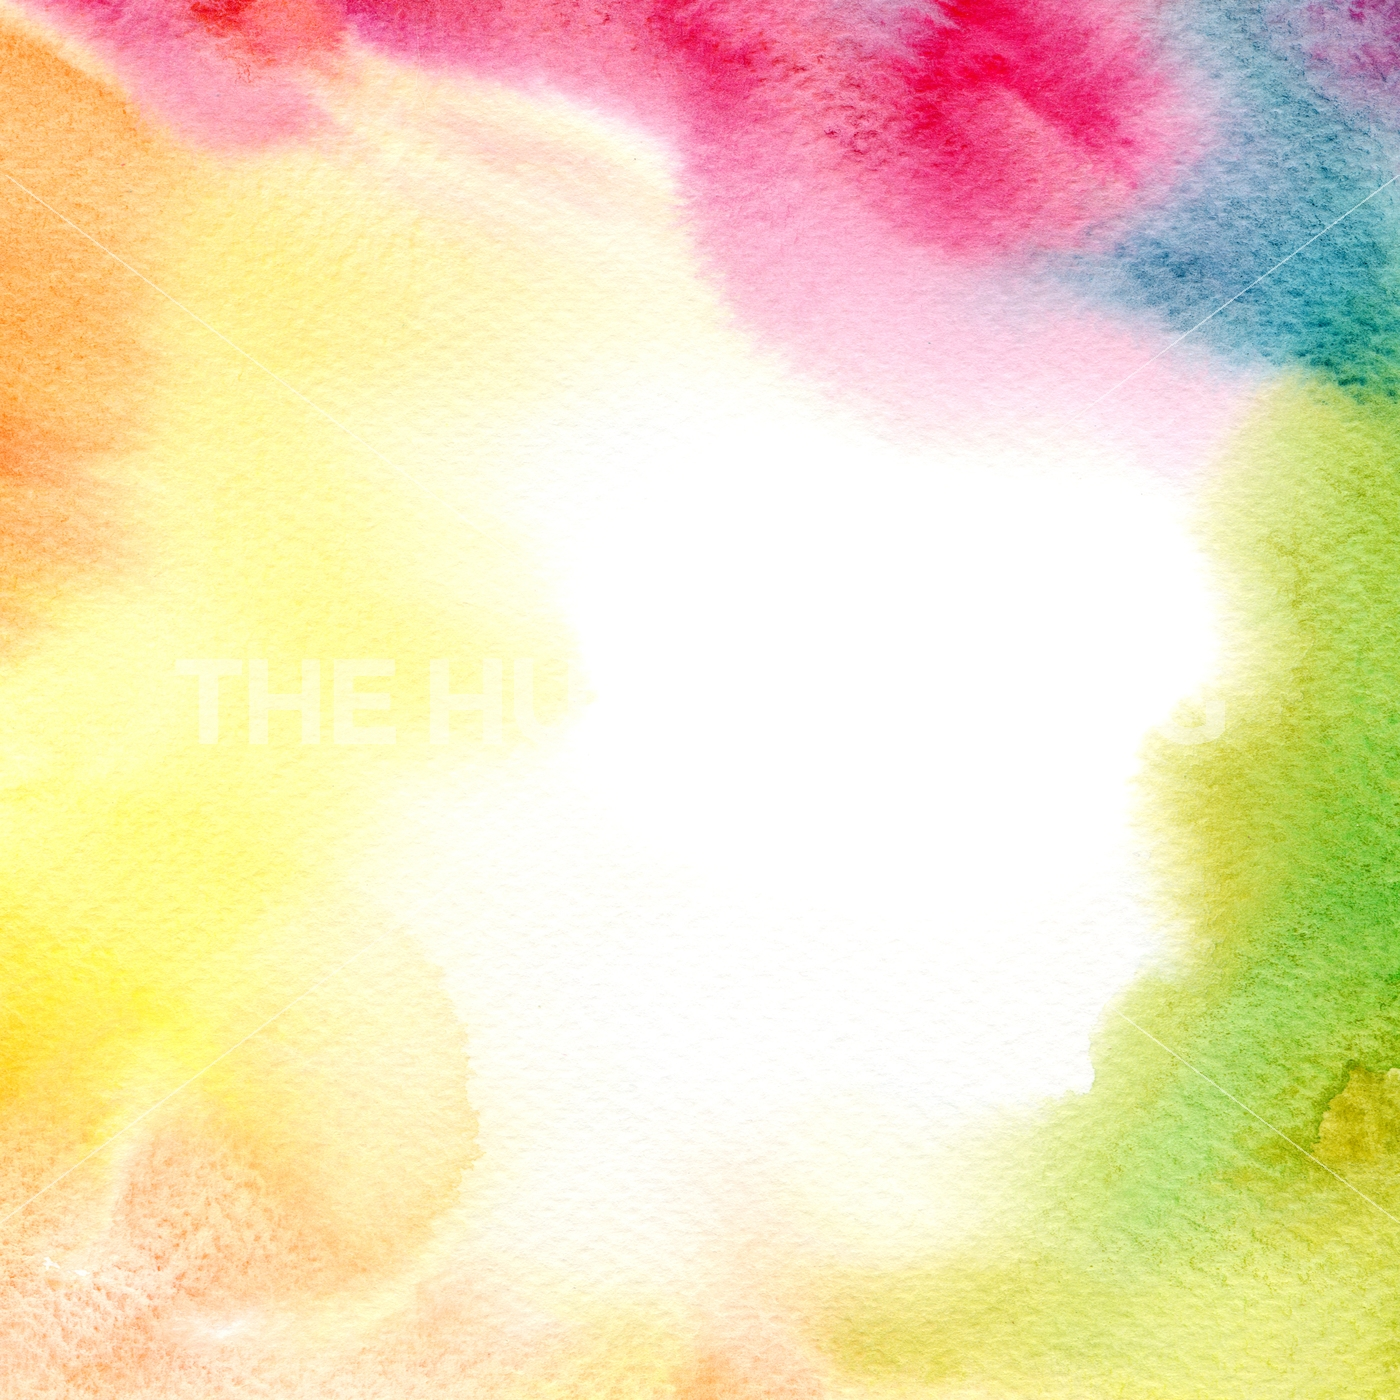 Abstract watercolor painted background by Rudchenko | TheHungryJPEG.com